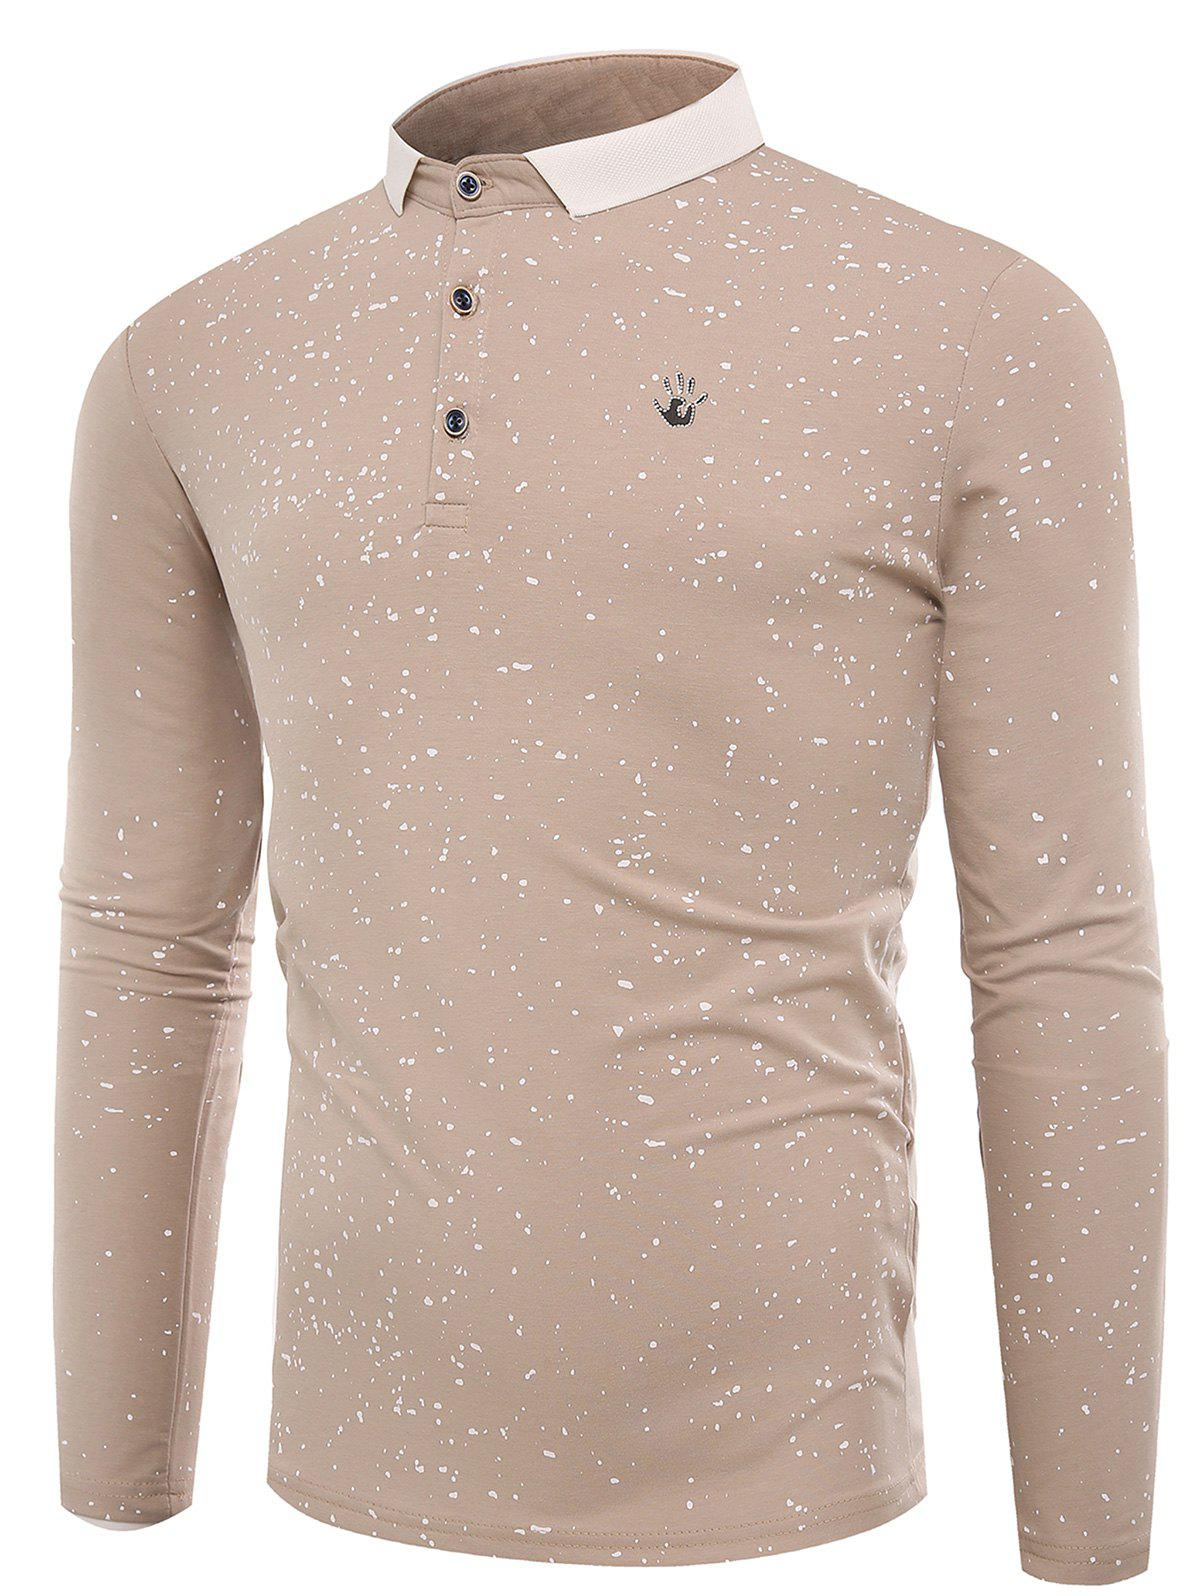 Splatter Paint Long Sleeve Polo T-shirt - APRICOT 2XL